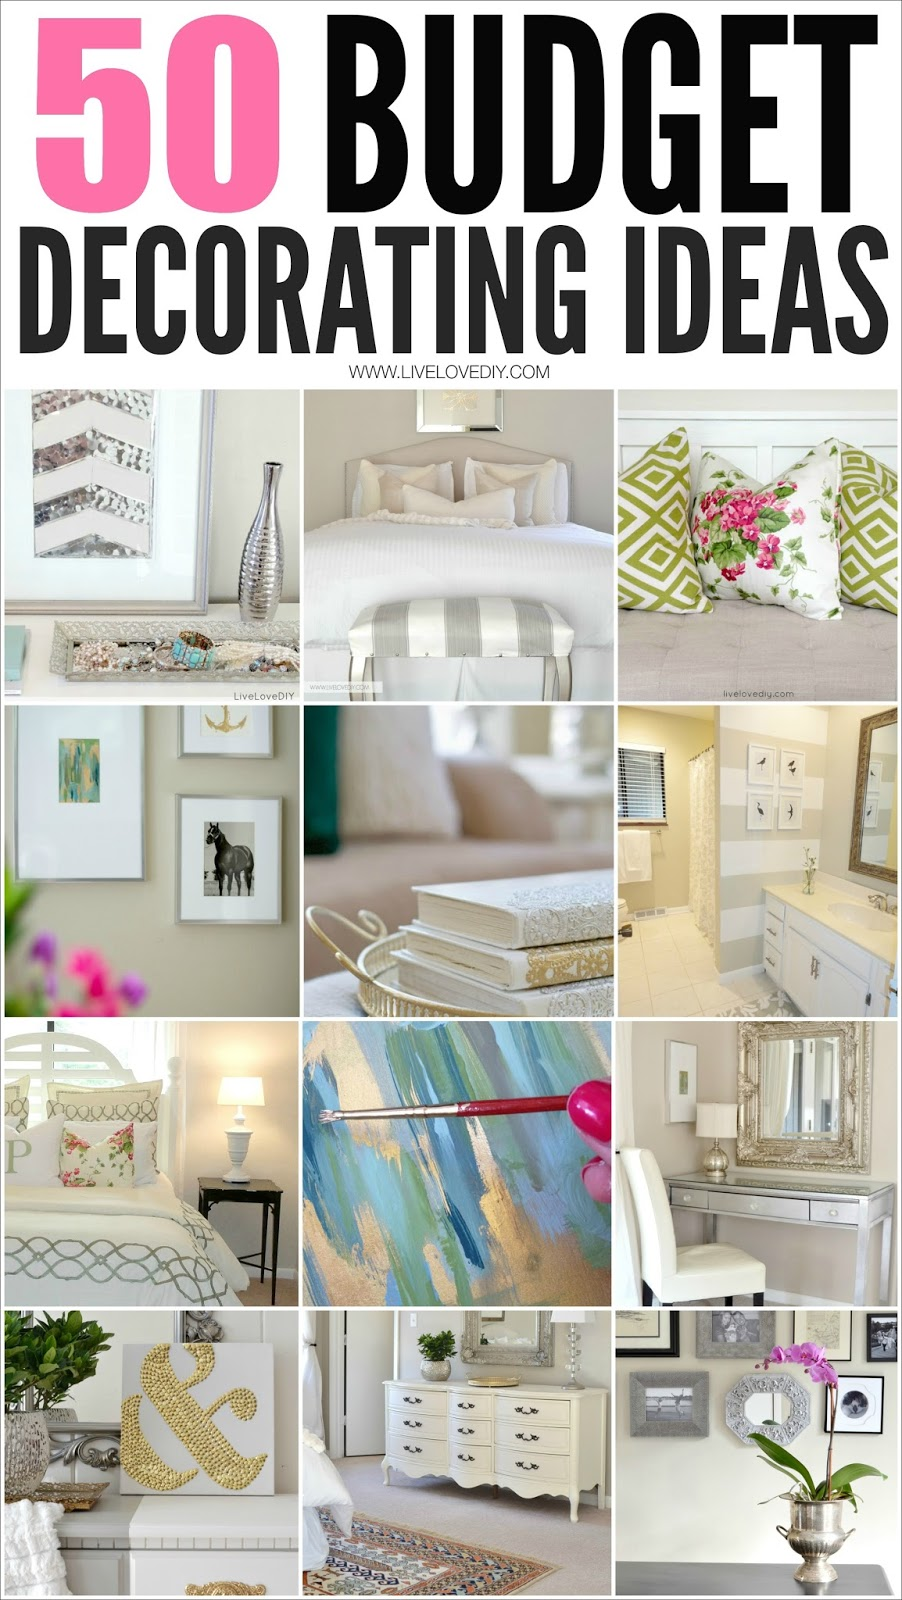 Decorating On A Budget livelovediy: 50 budget decorating tips you should know!